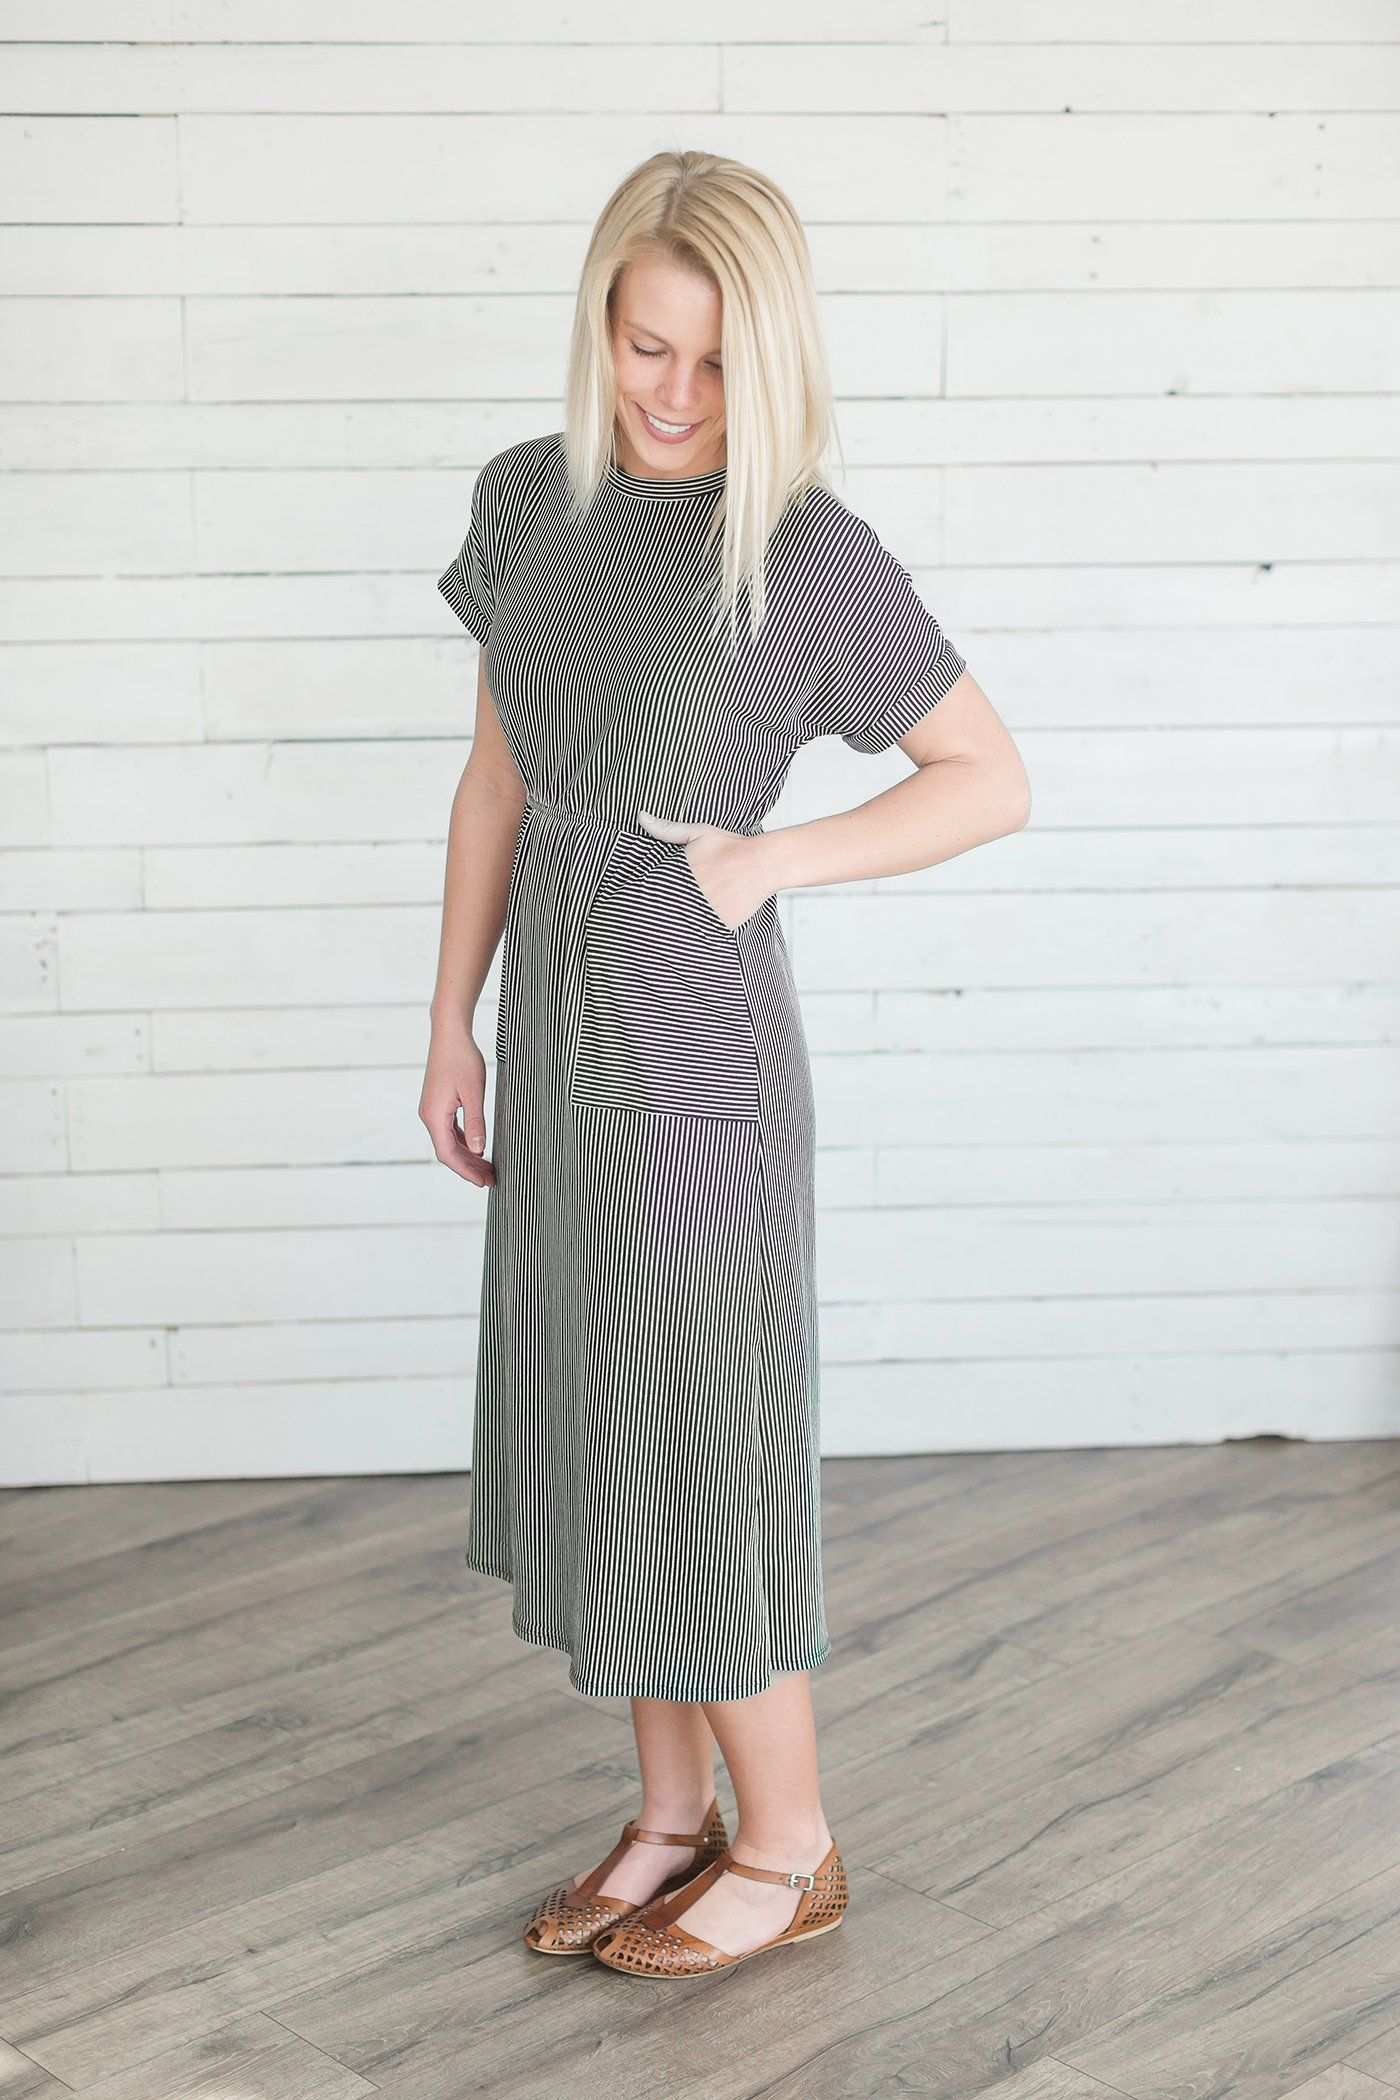 bdbf69d29d3a8 Stripe Pocket Modest Midi Dress | Clothing and Accessories | Dresses ...